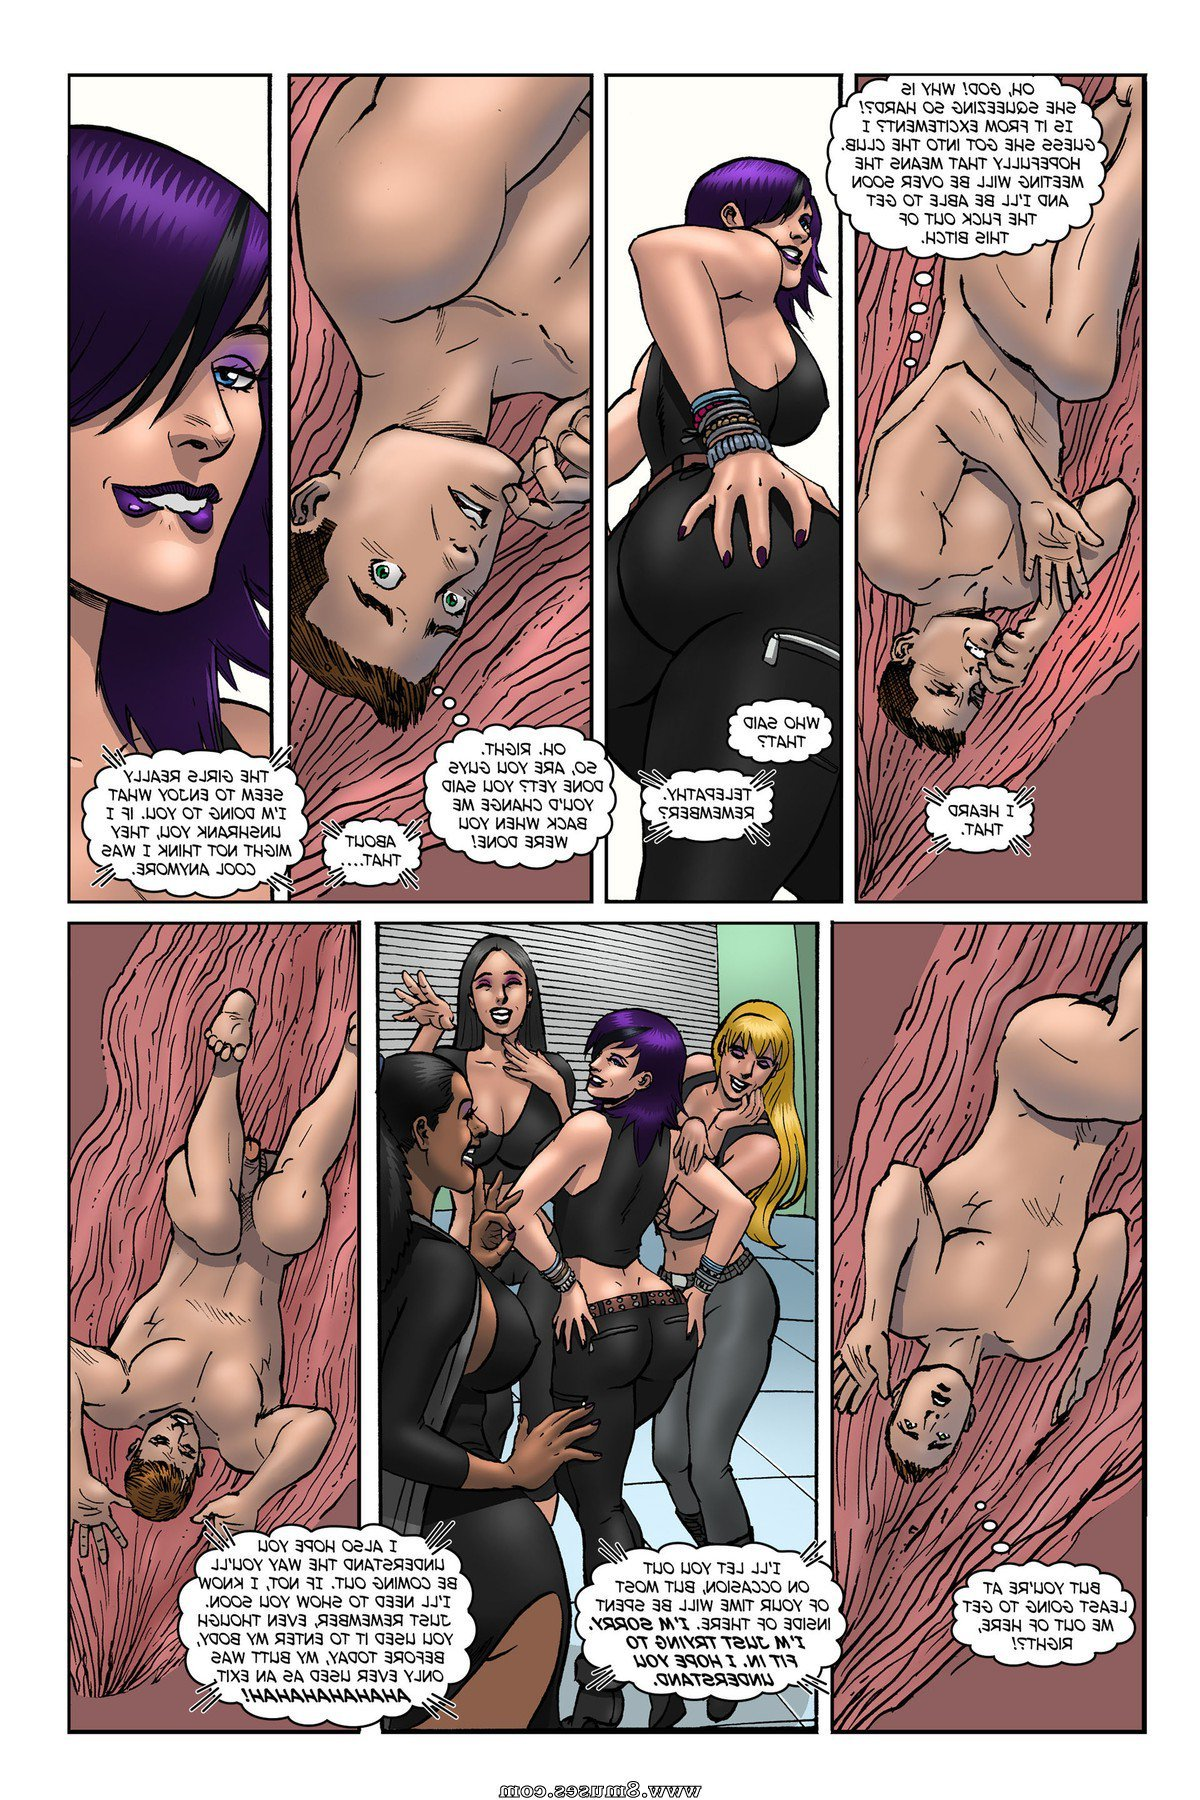 Giantess-Fan-Comics/Fitting-In/Issue-1 Fitting_In_-_Issue_1_17.jpg